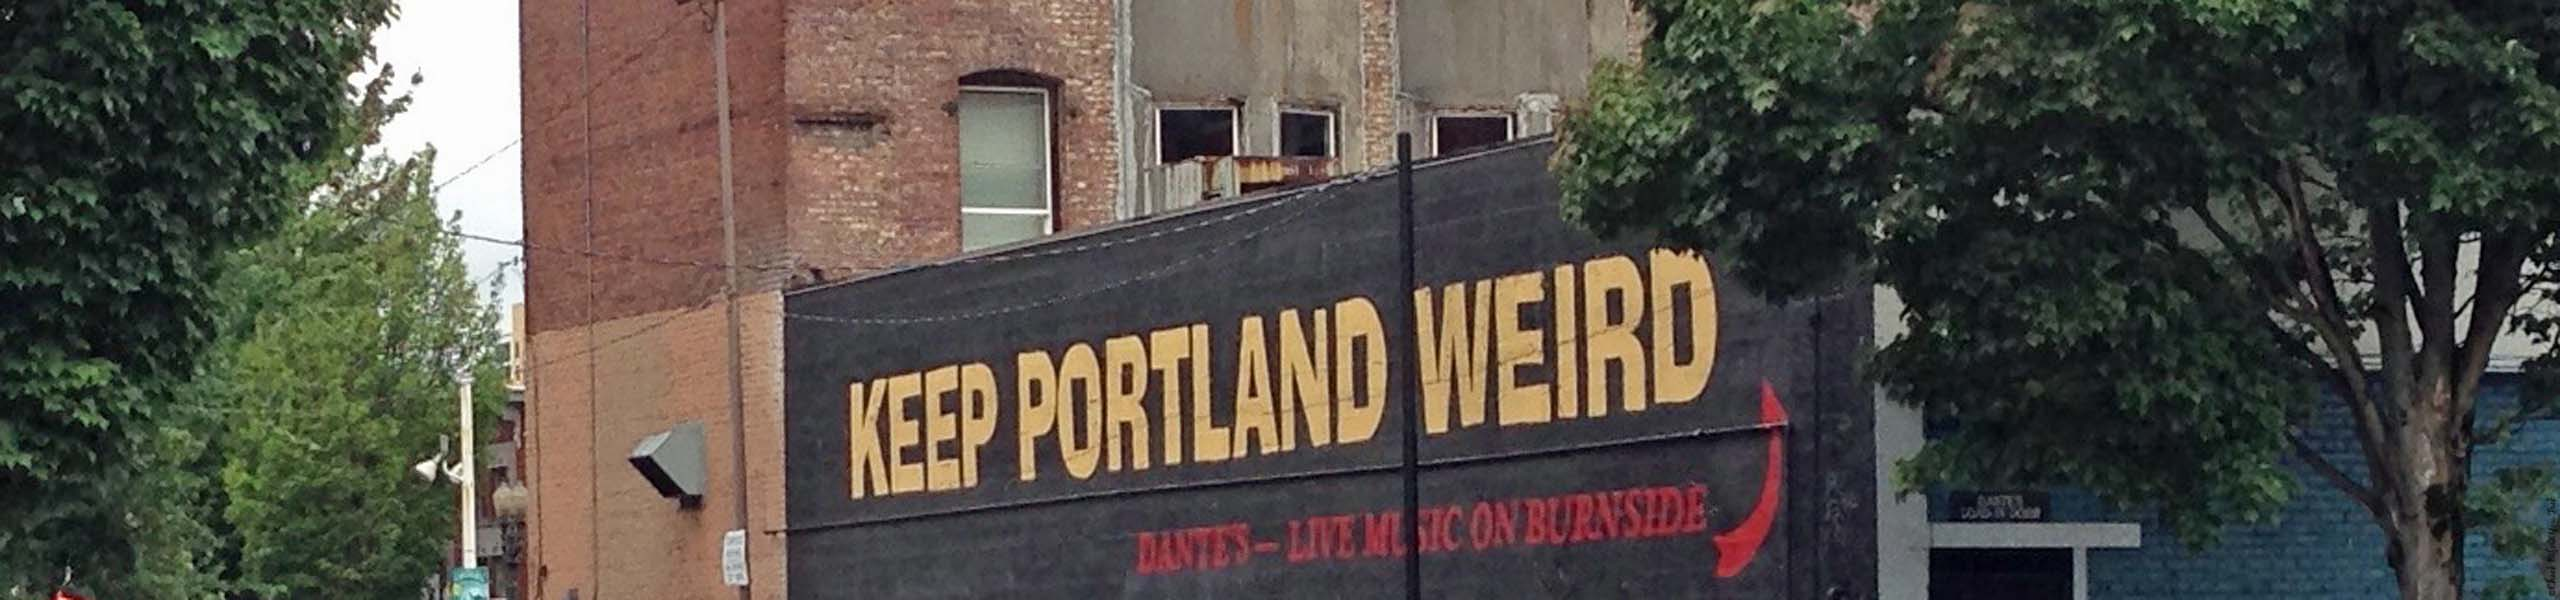 Keep Portland Weird - Portland, Oregon